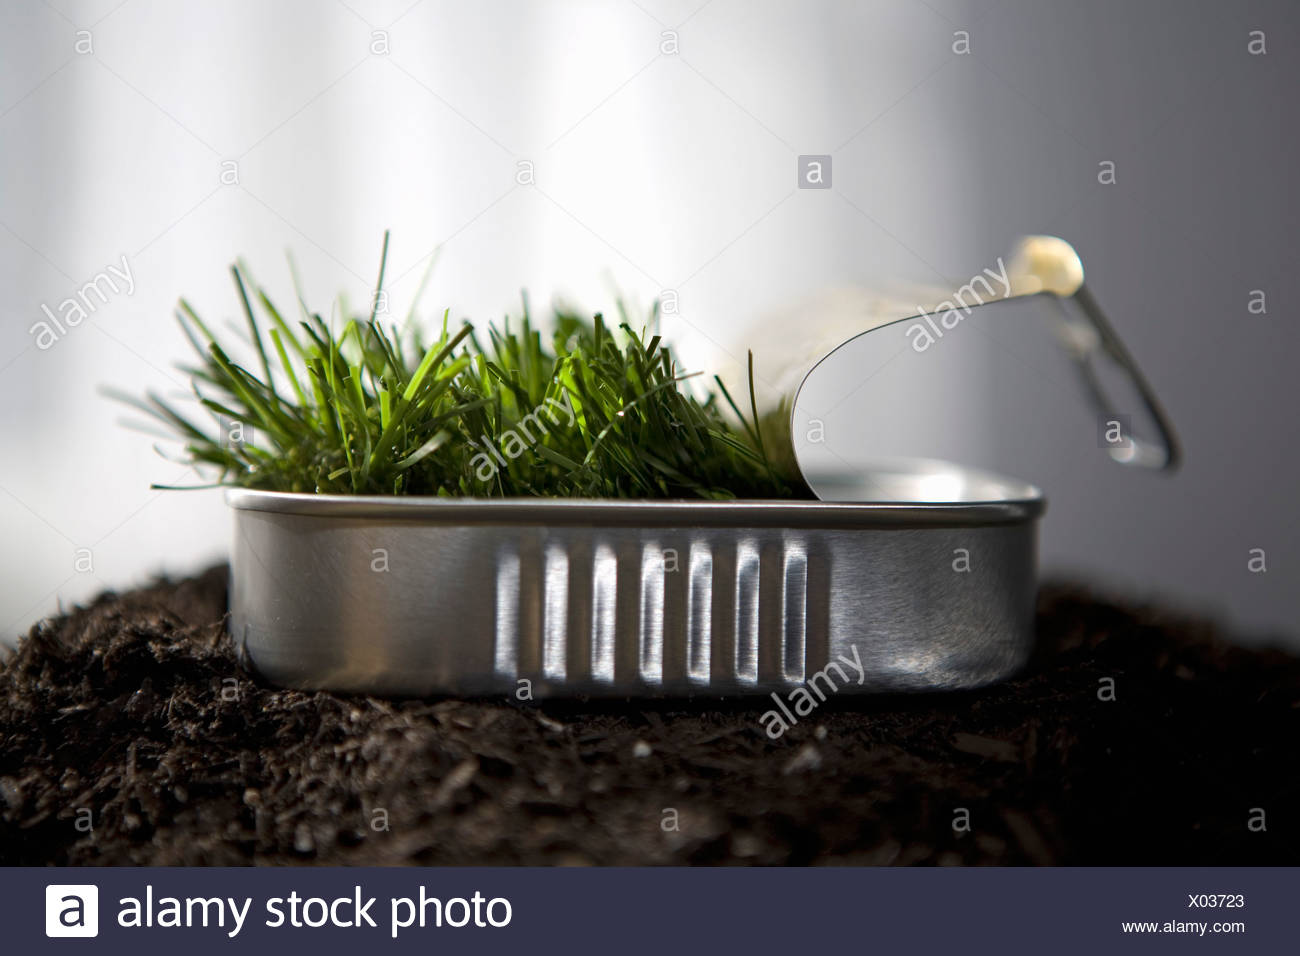 Grass sprouting in sardine can - Stock Image